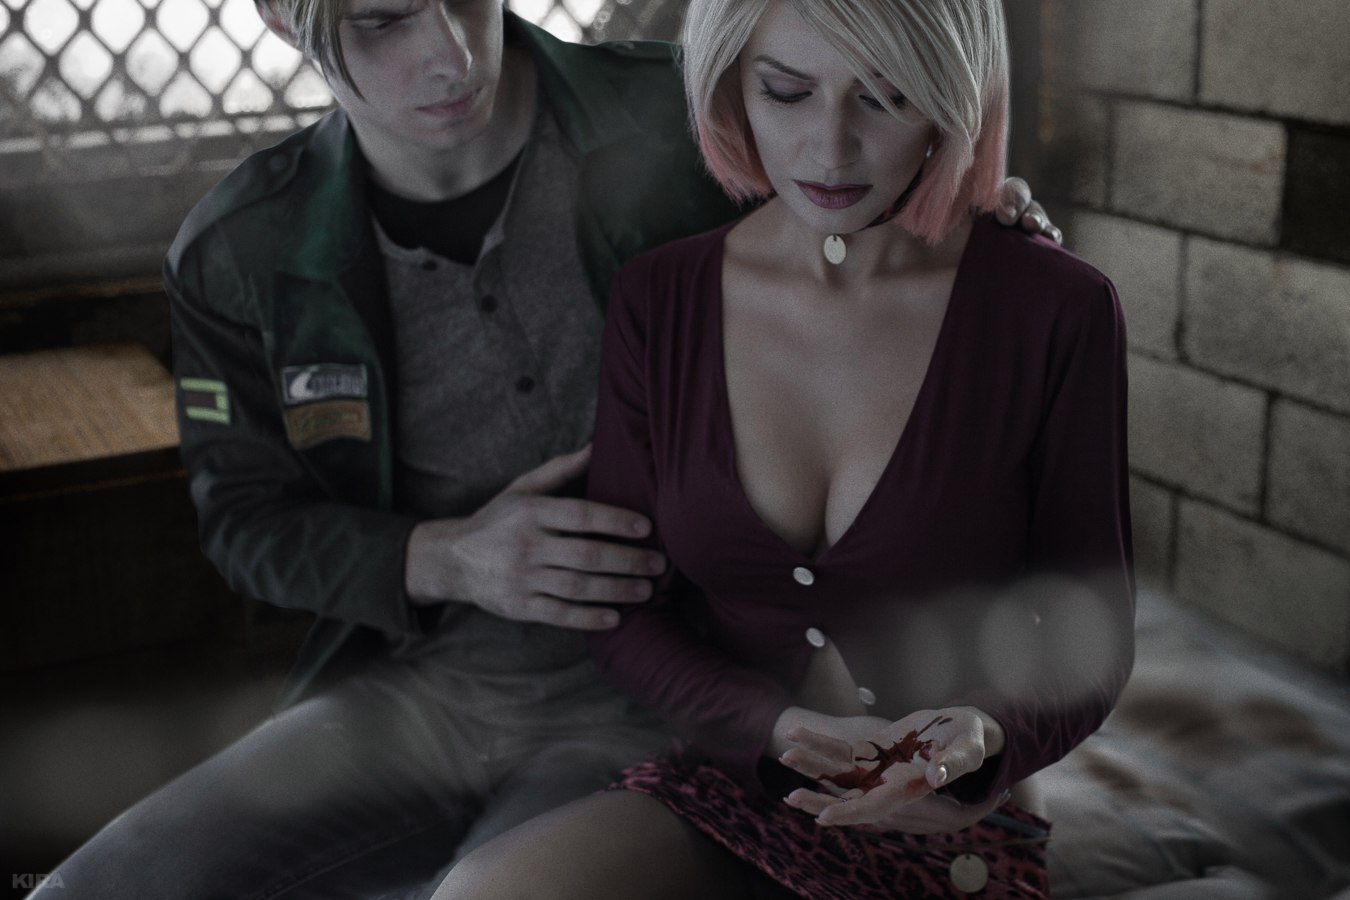 Silent Hill 2 Cosplay Captures The Game S Disturbing Atmosphere